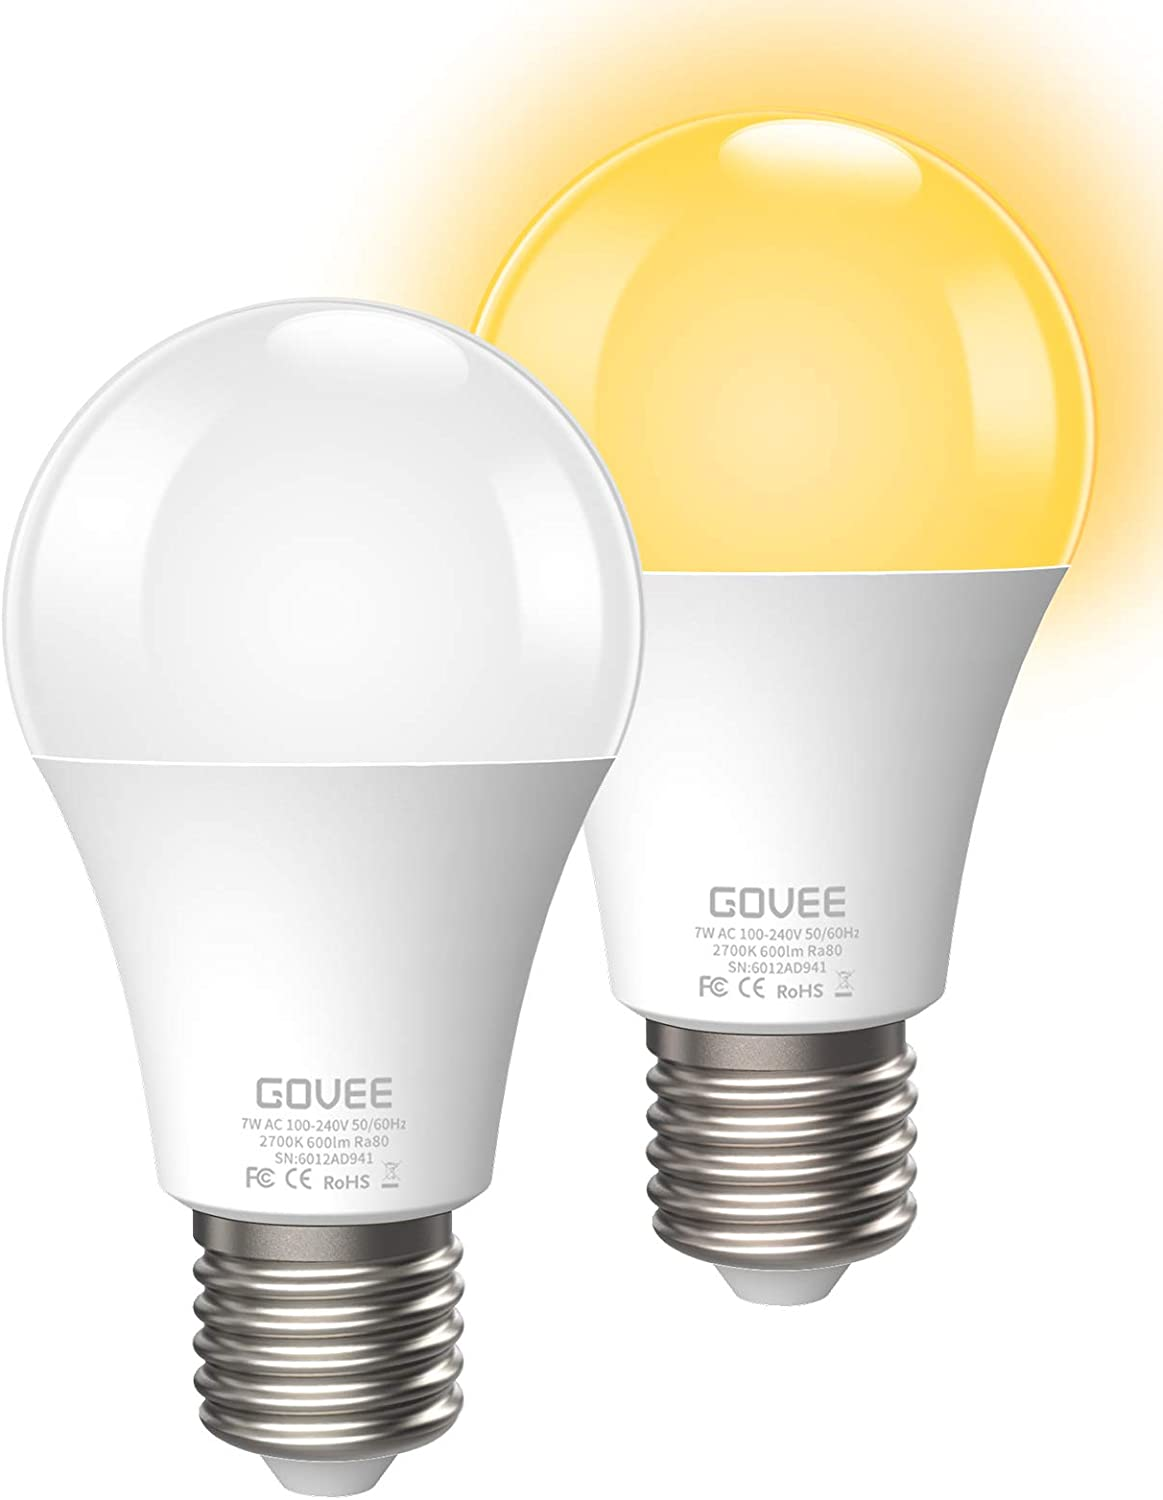 Govee Dusk to Dawn Light Bulbs Outdoor, Soft White Light Blubs 7W 2700K 600lm Auto On/Off Smart Bulb, E26/E27 Blubs for Garage Stairs Porch Courtyard Basement Patio, 2 Pack